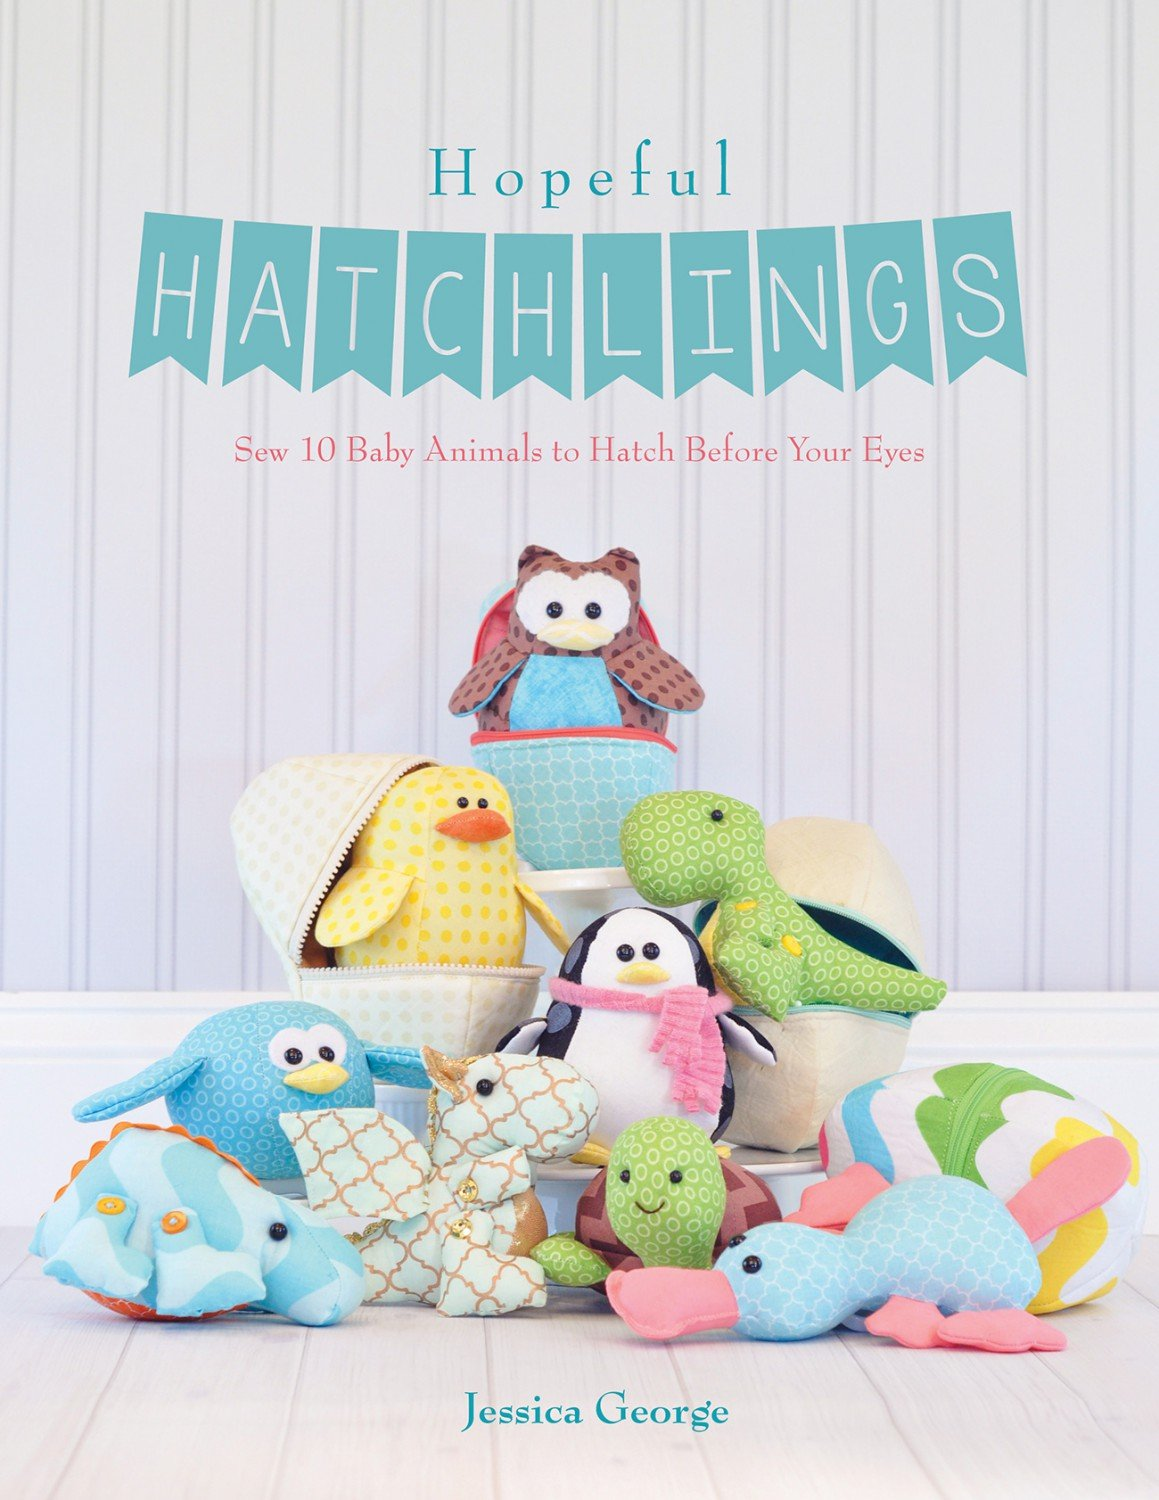 Hopeful Hatchlings - BK1001 - MAY BE RESTOCKED UPON REQUEST